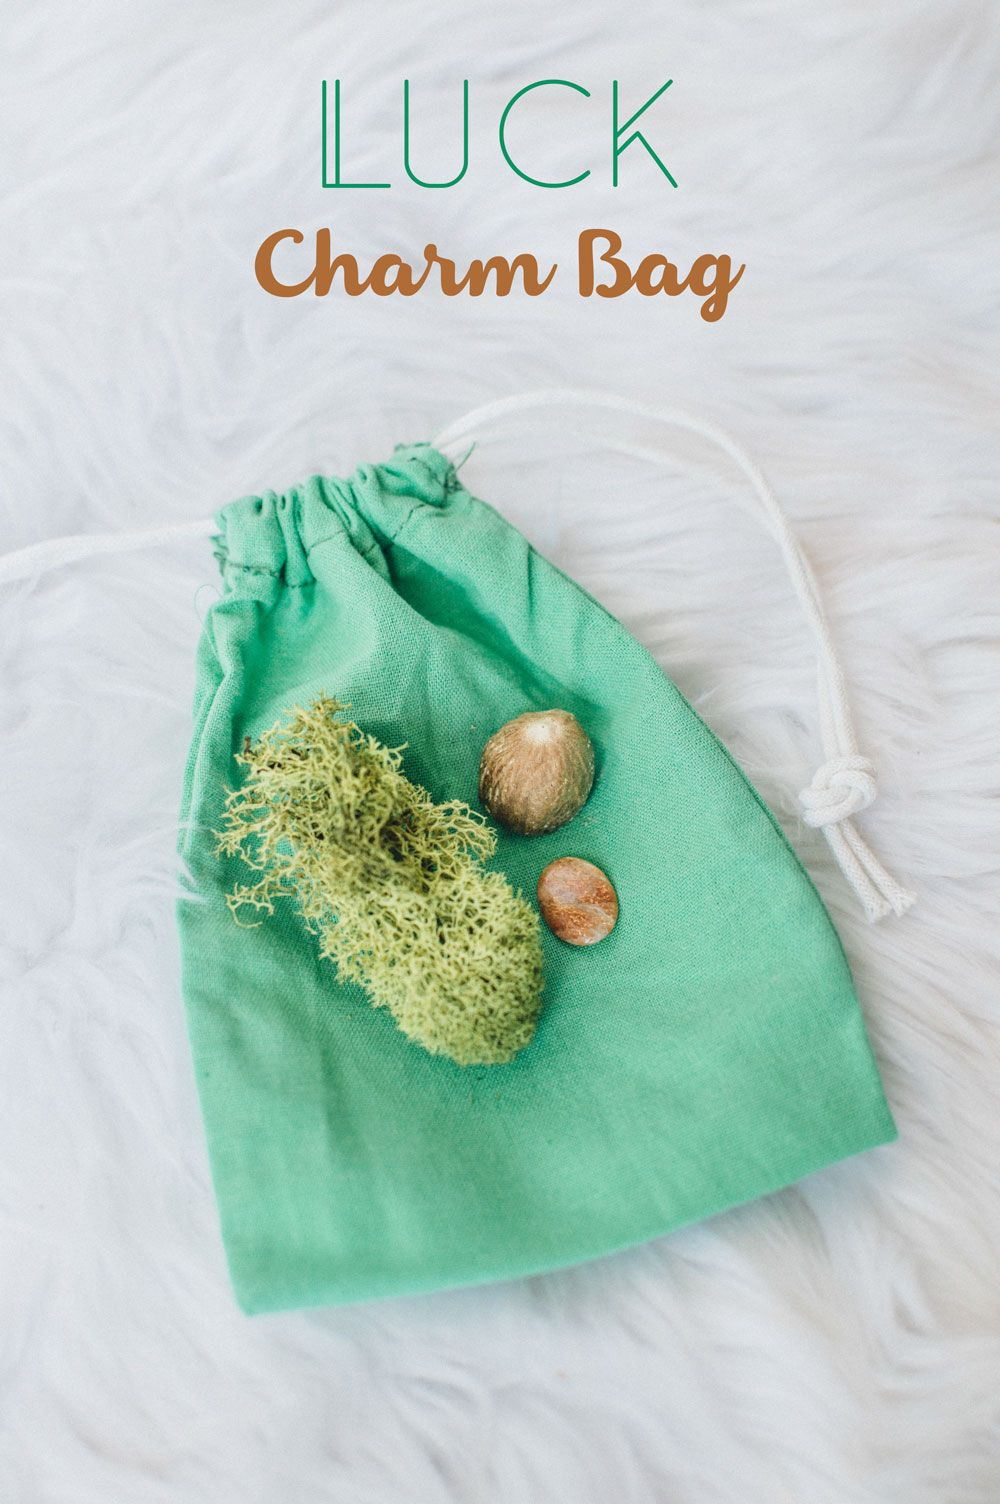 Pouch for simples herbs incense ritual sundries belt pouch spell bag wicca keyring clip charms